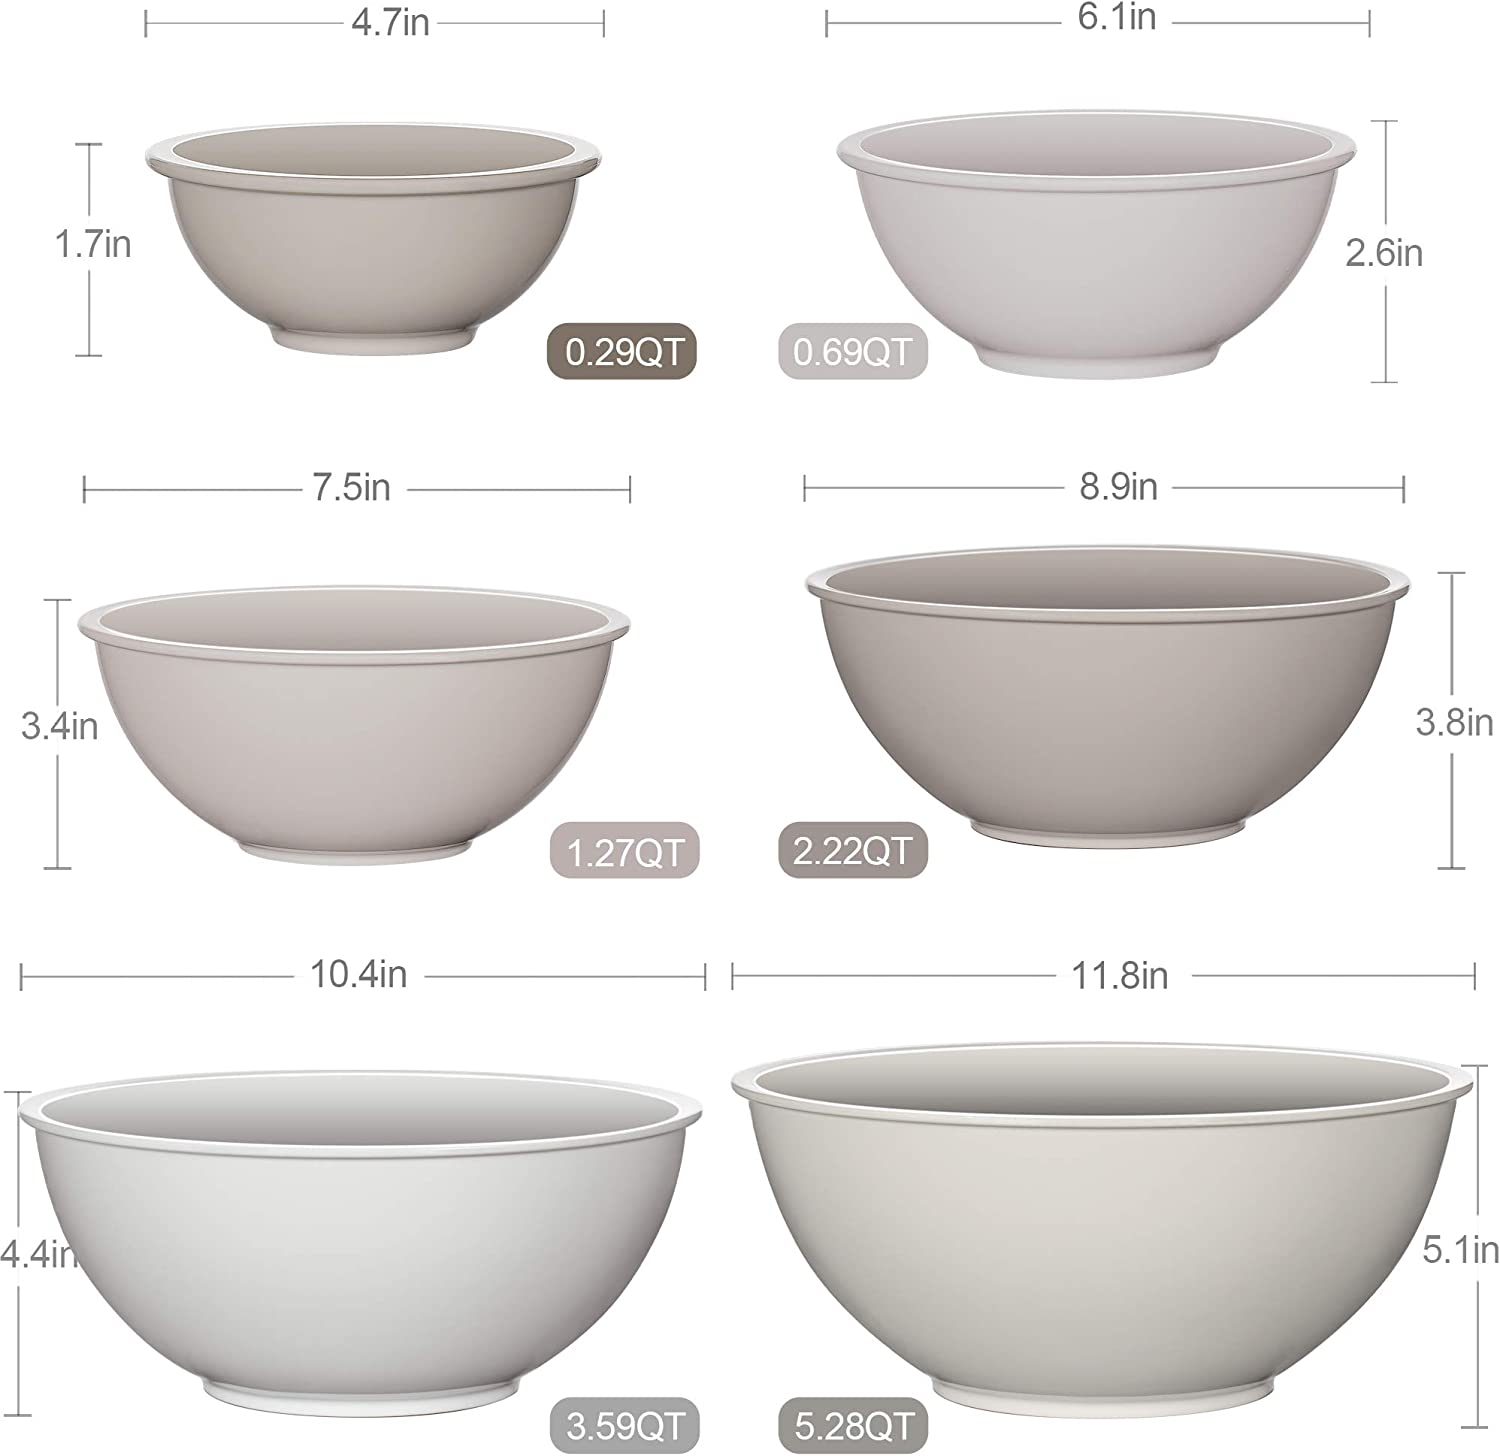 6 Pcs Serving Bowls for Kitchen Cooking Ideal for Baking YIHONG Plastic Mixing Bowls Set Cooking and Serving Food Prepping Nesting Bowls Set for Space Saving Storage,Blue Ombre